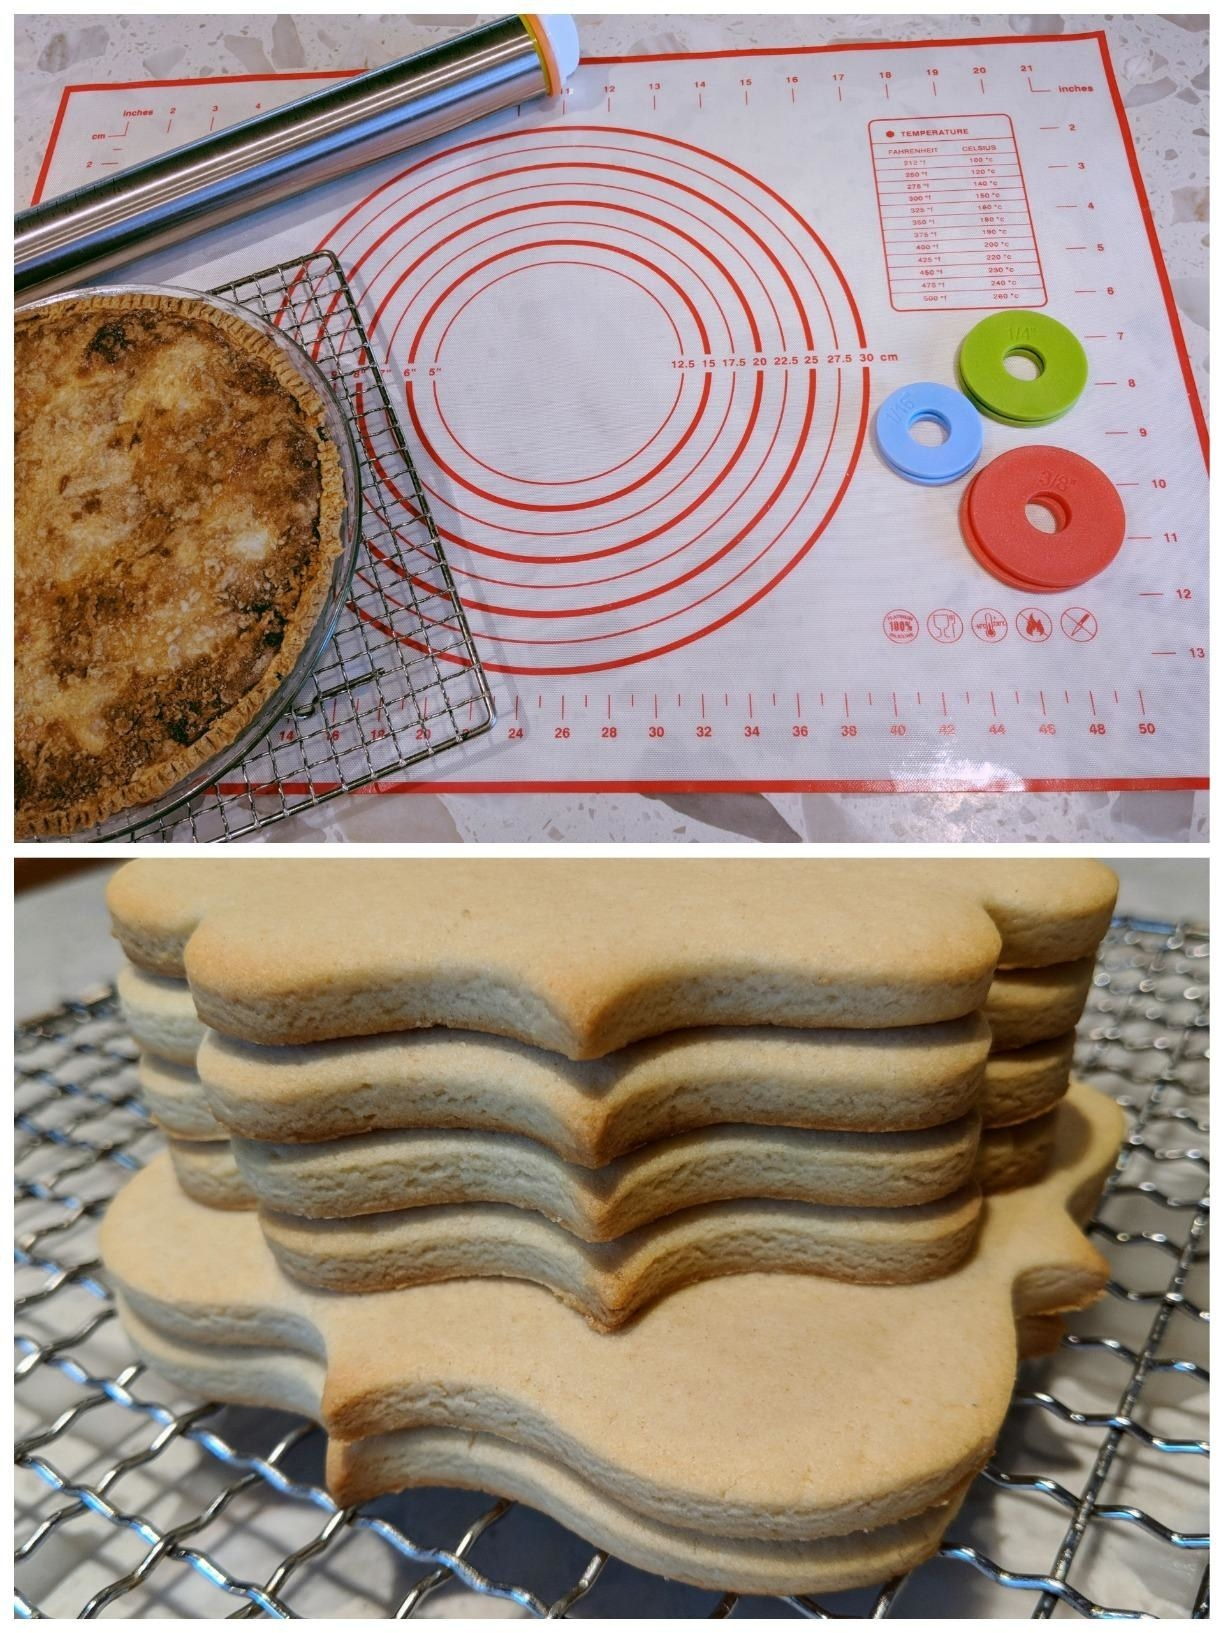 A review image of the mat, rolling pin and discs, a pie made using the mat, and cut-out cookies, all with perfectly even heights